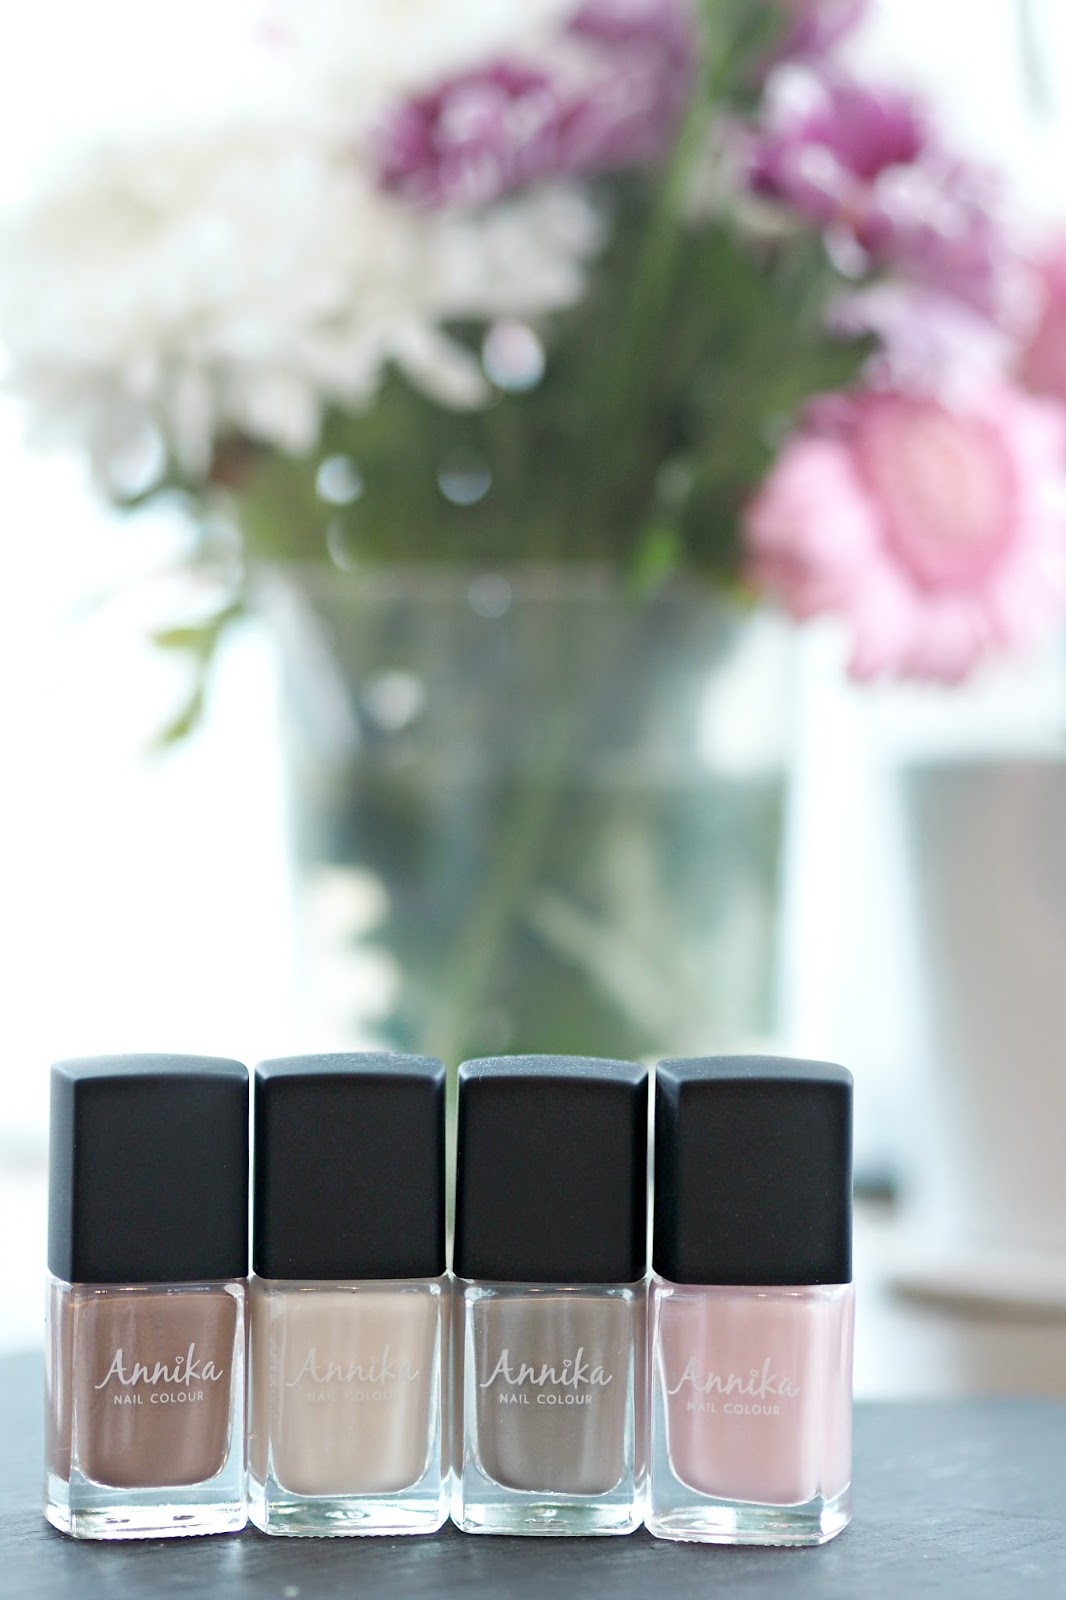 annika nail polish review from a beauty blogger